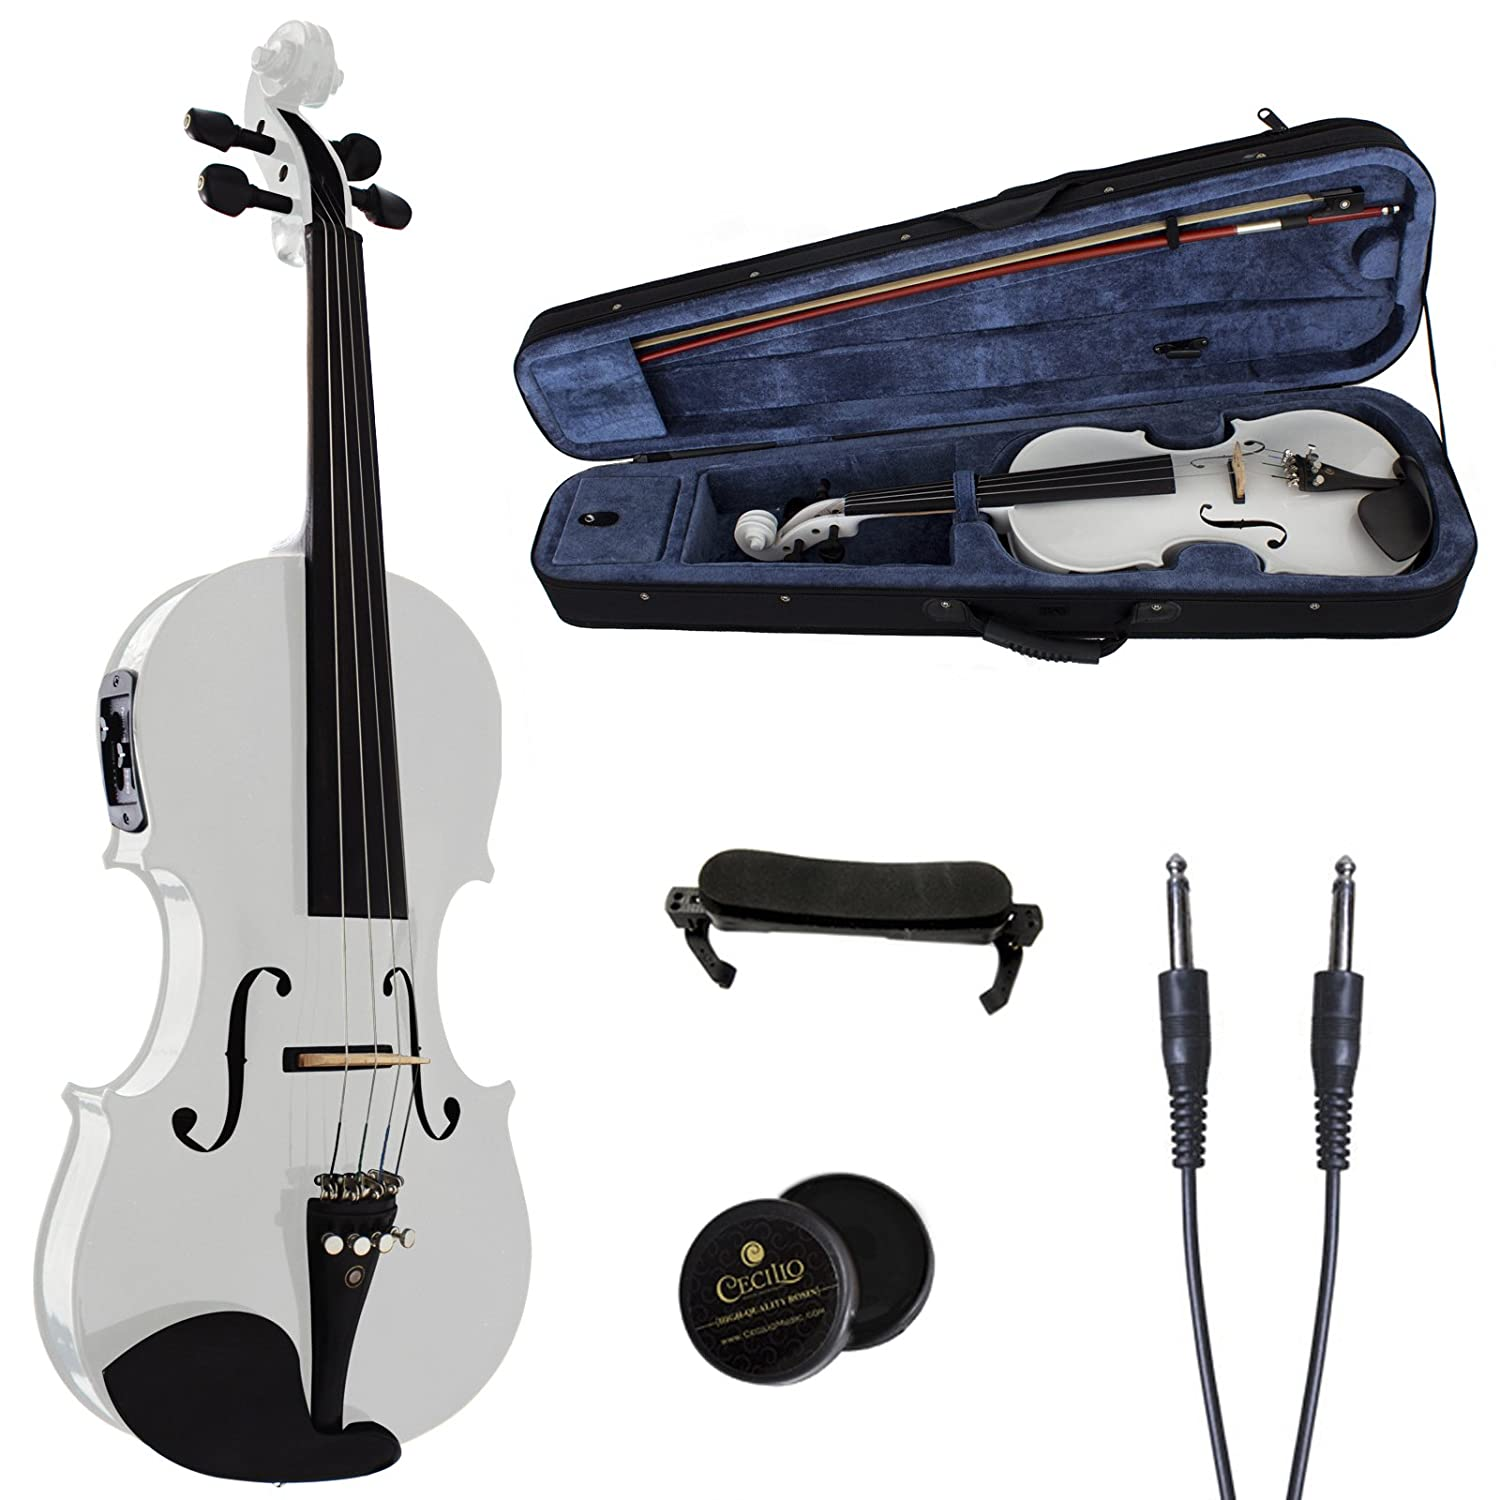 Cecilio CVNAE-White Ebony Fitted Solid Wood Acoustic Electric Violin, White, Size 4/4 (Full Size) 4/4CVNAE-White+SR